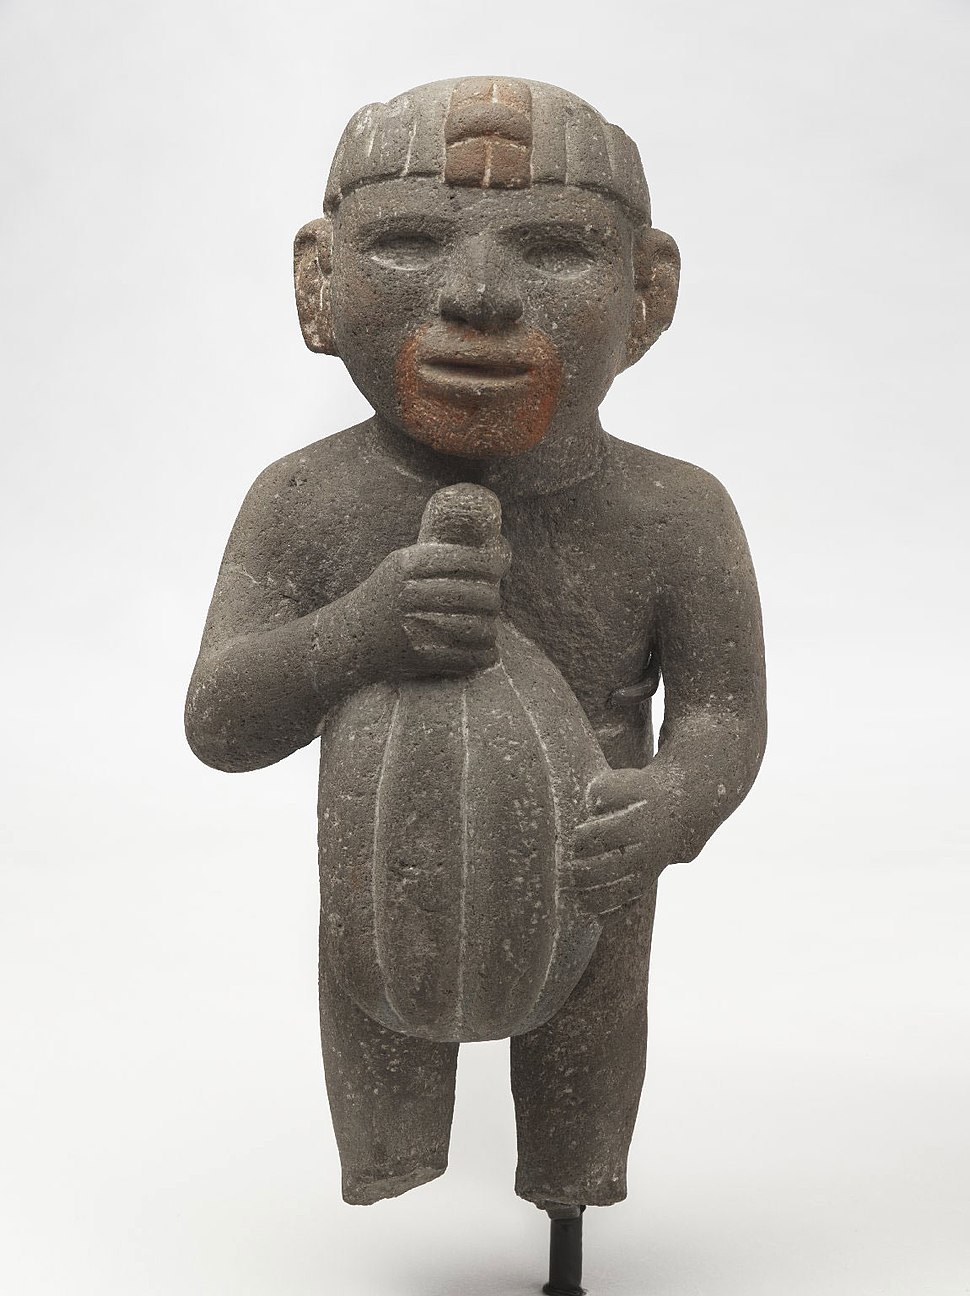 Aztec. Man Carrying a Cacao Pod, 1440-1521